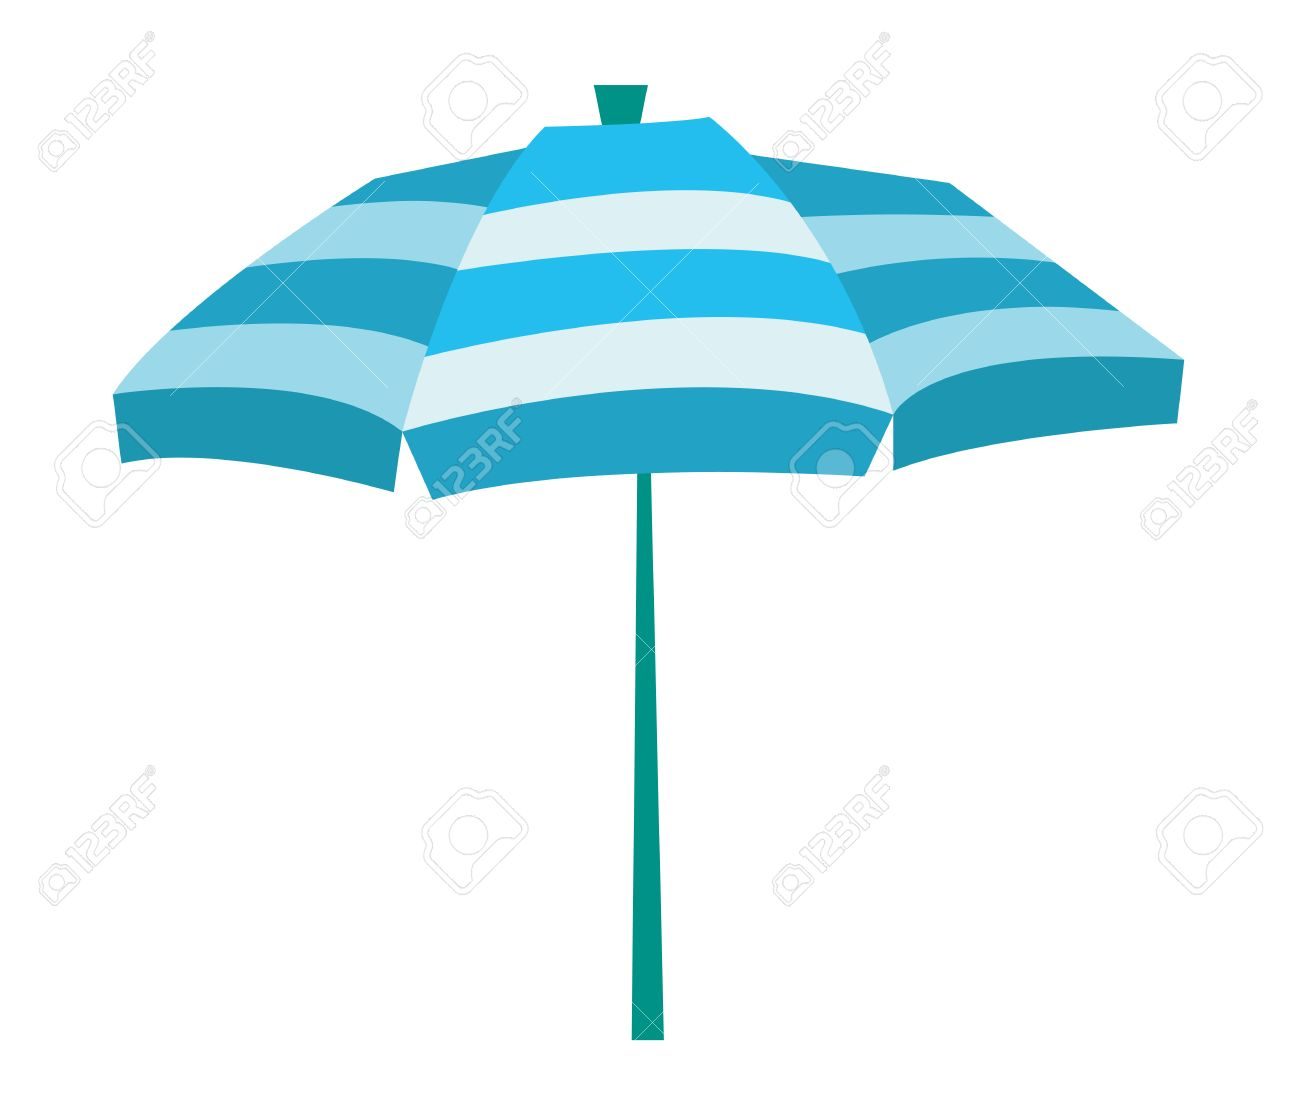 striped beach umbrella vector flat design illustration isolated rh 123rf com umbrella vector eps umbrella vector eps